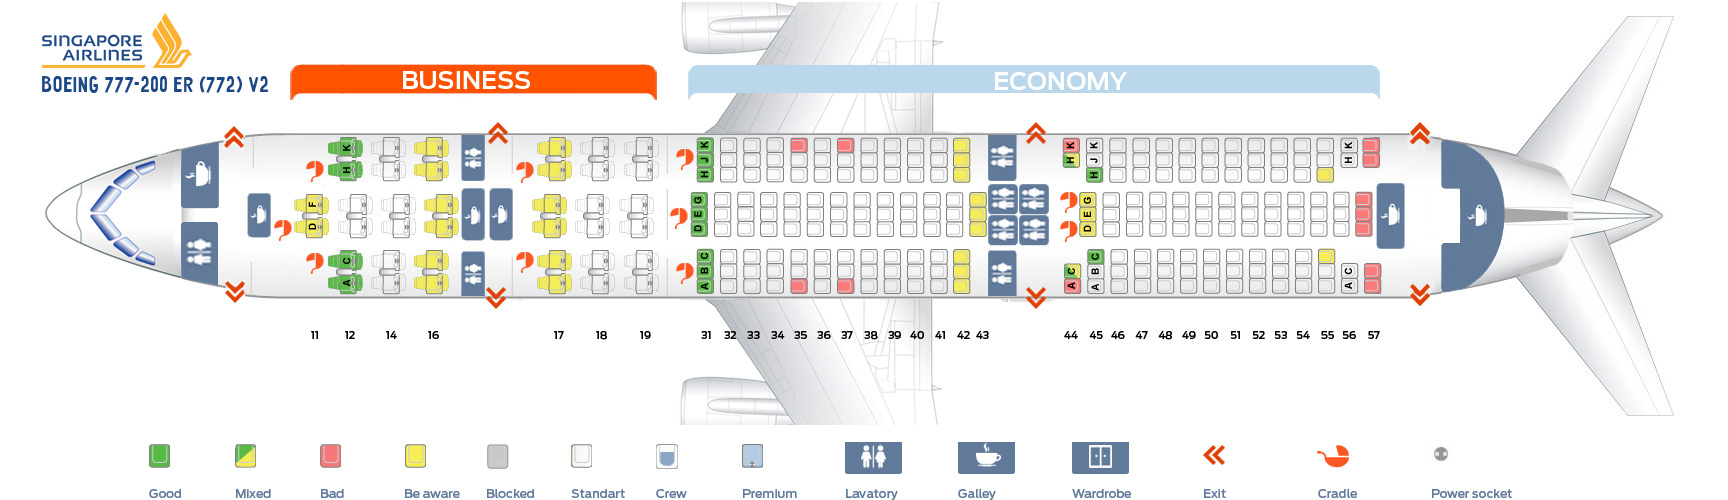 Seat Map Boeing 777-200ER V2 Singapore Airlines